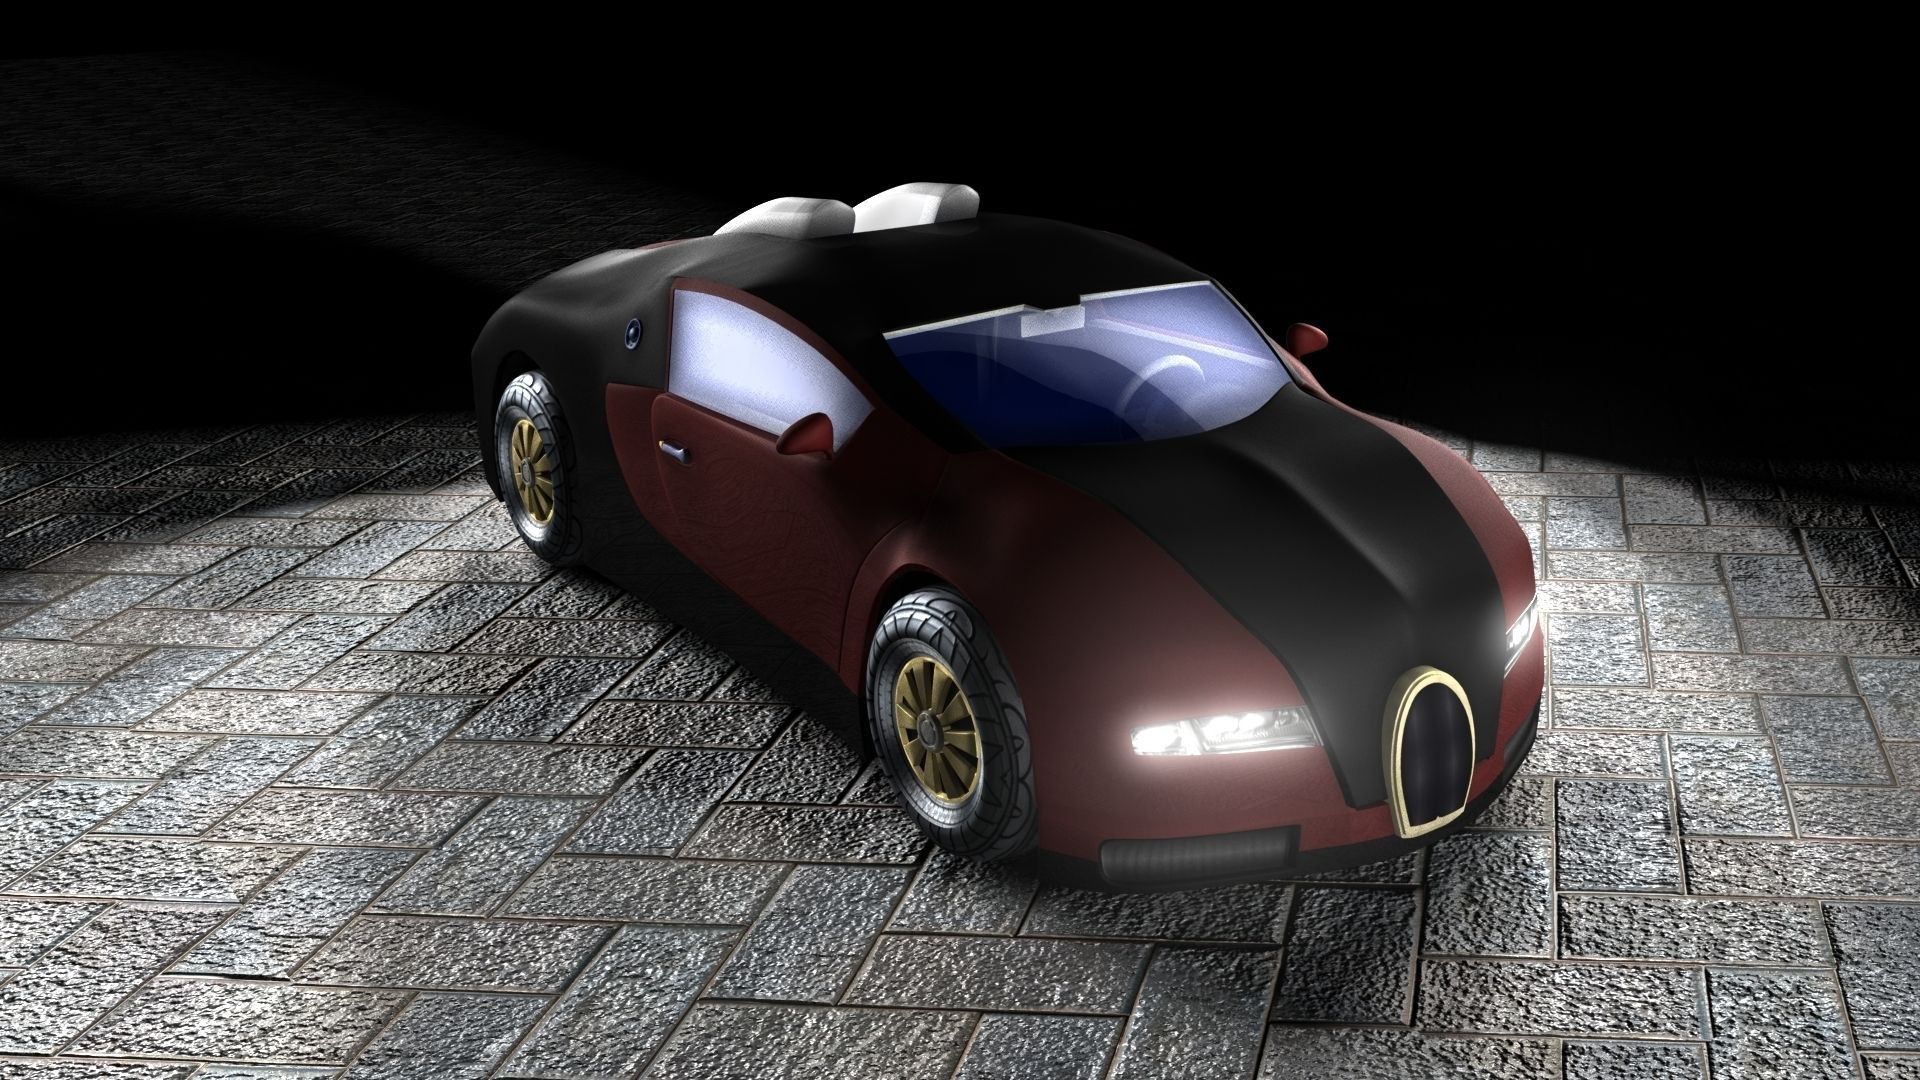 bugatti veyron 3d model with interior 3d model game ready ma mb. Black Bedroom Furniture Sets. Home Design Ideas